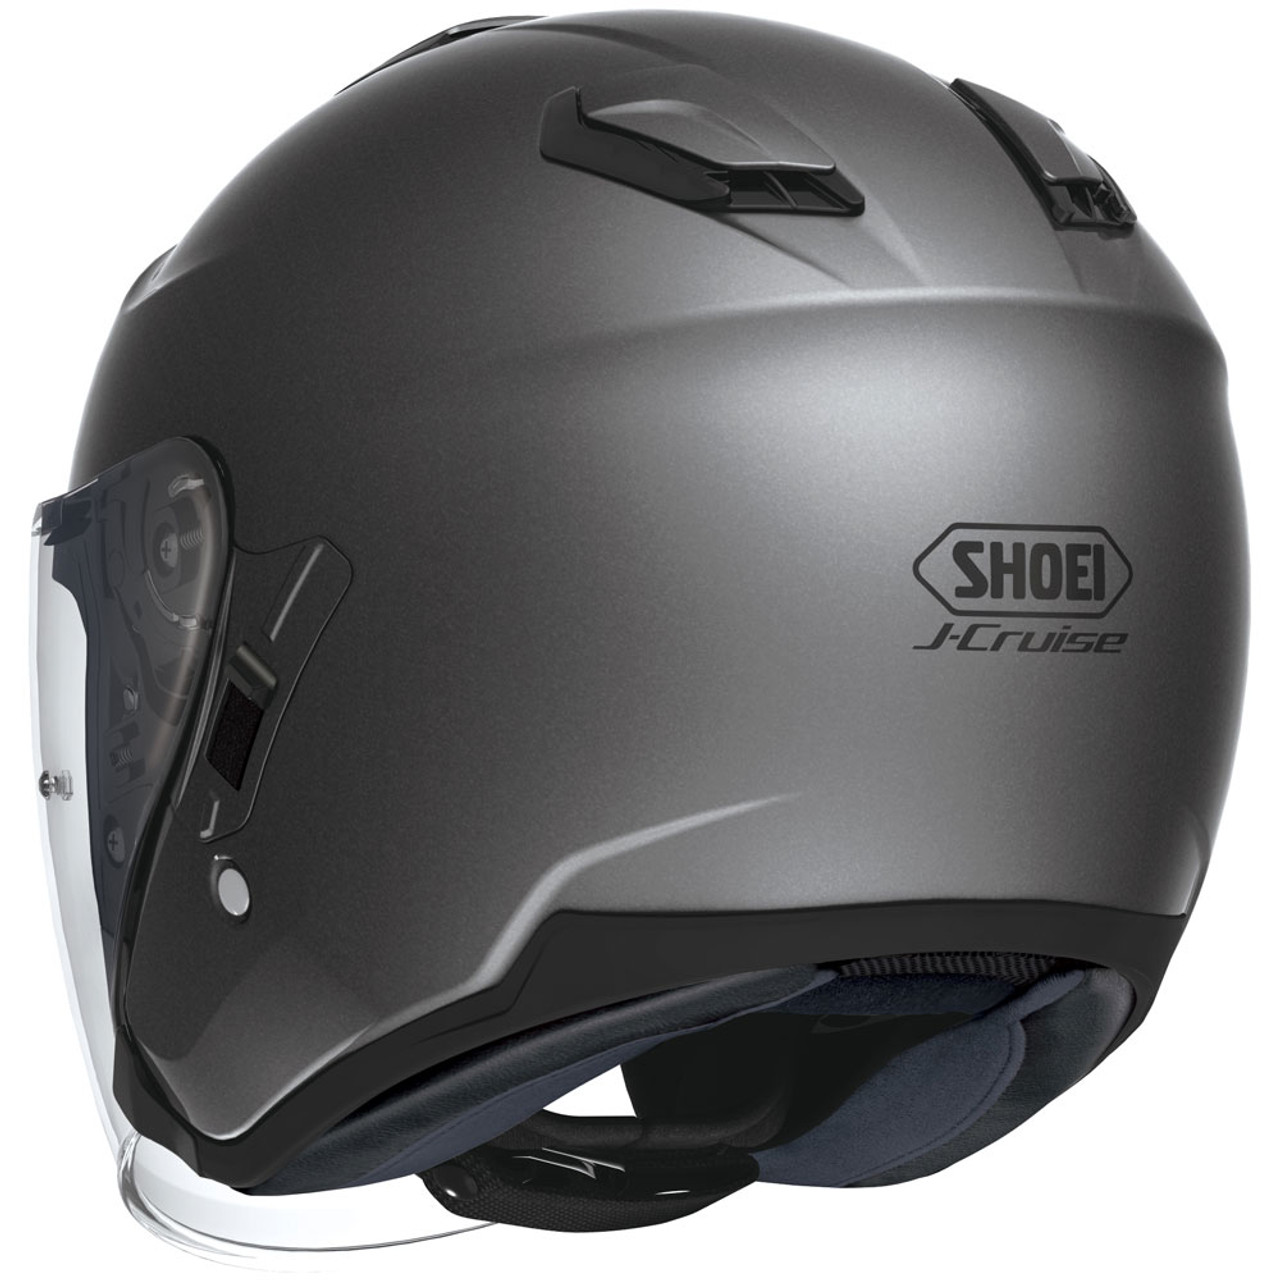 33a17904 Shoei J-Cruise Open Face Motorcycle Helmet - Matte Deep Grey - Get ...